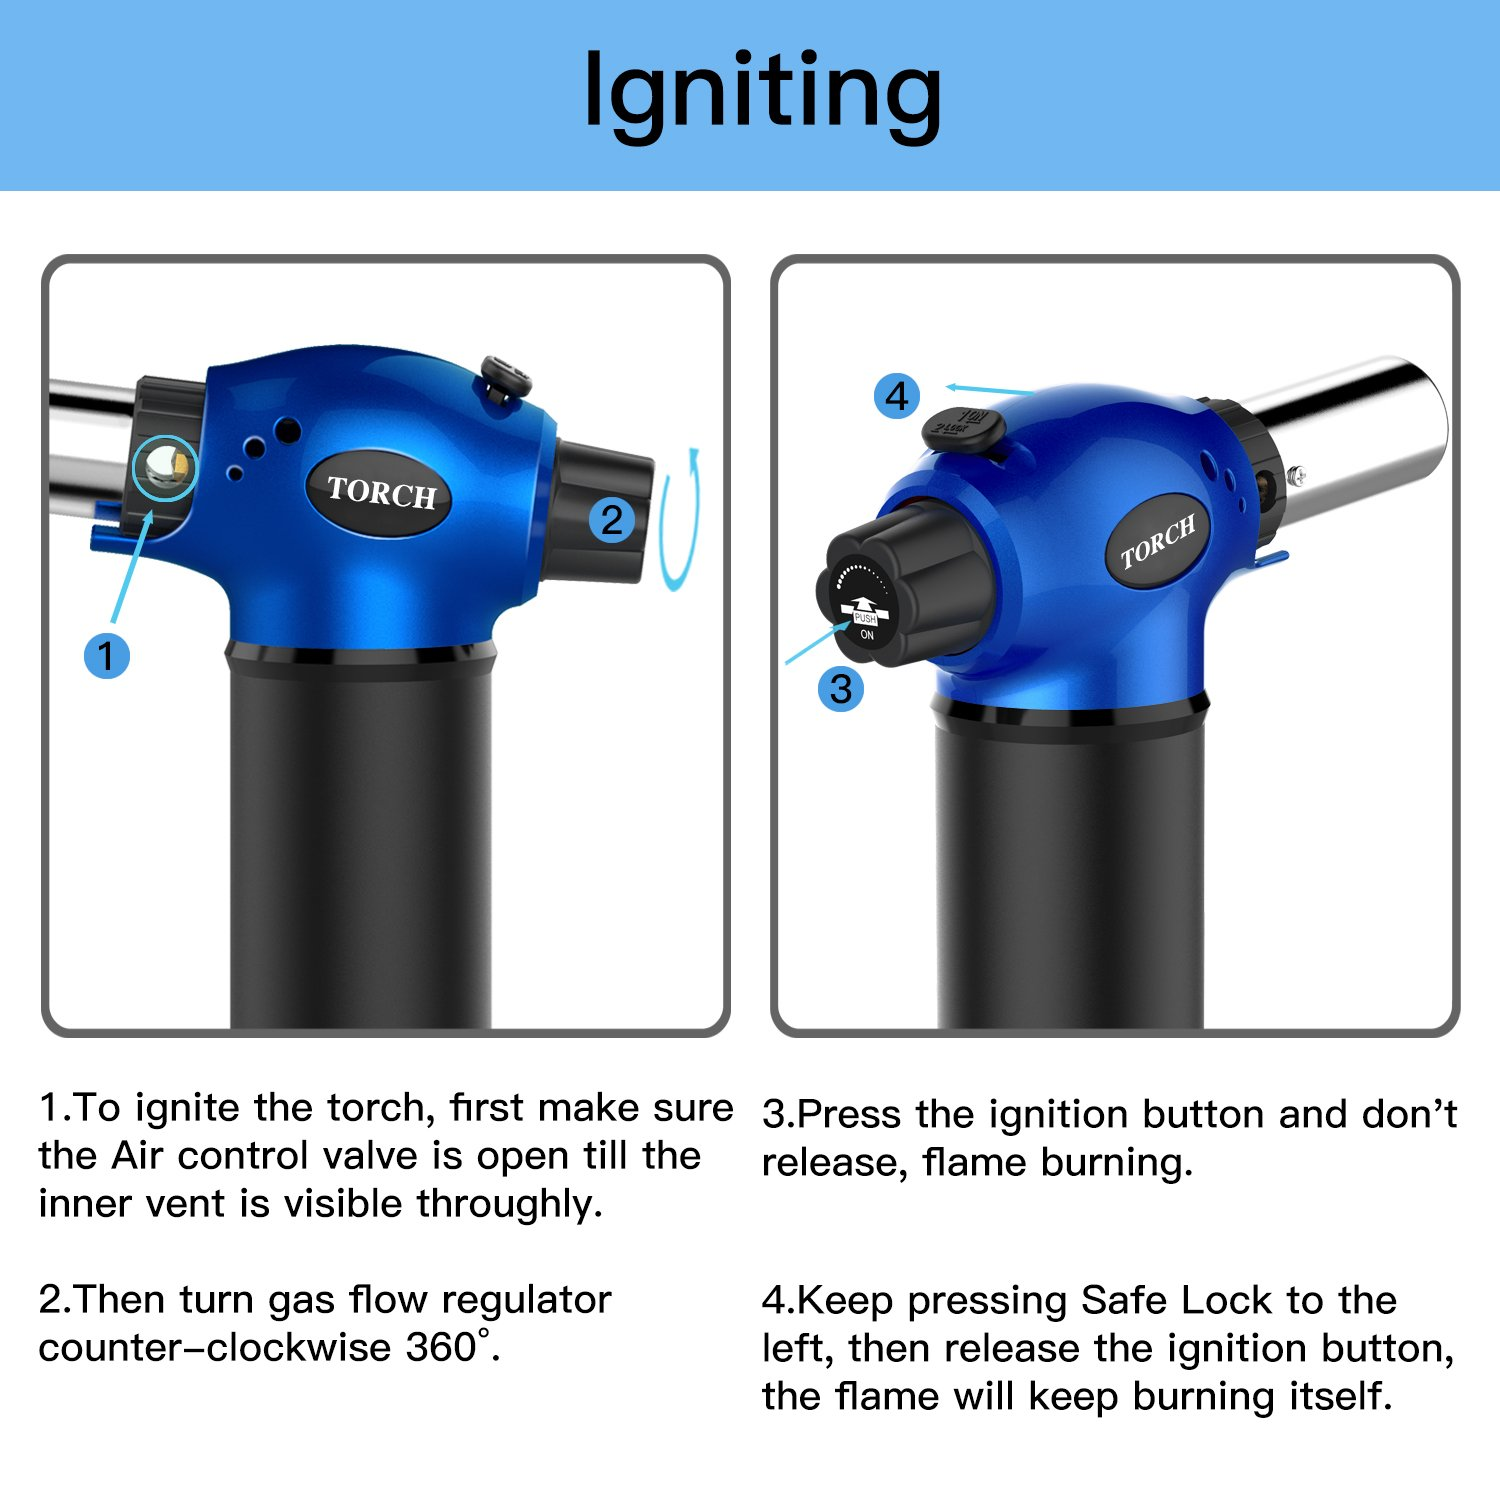 LUCKEA Blow Torch Lighter Kitchen Butane Culinary Torch Chef Cooking Torch Refillable Adjustable Flame Lighter with Two Type of Flame and Safety Lock and for Crème Brûlée, BBQ and Baking - Blue by Luckea (Image #4)